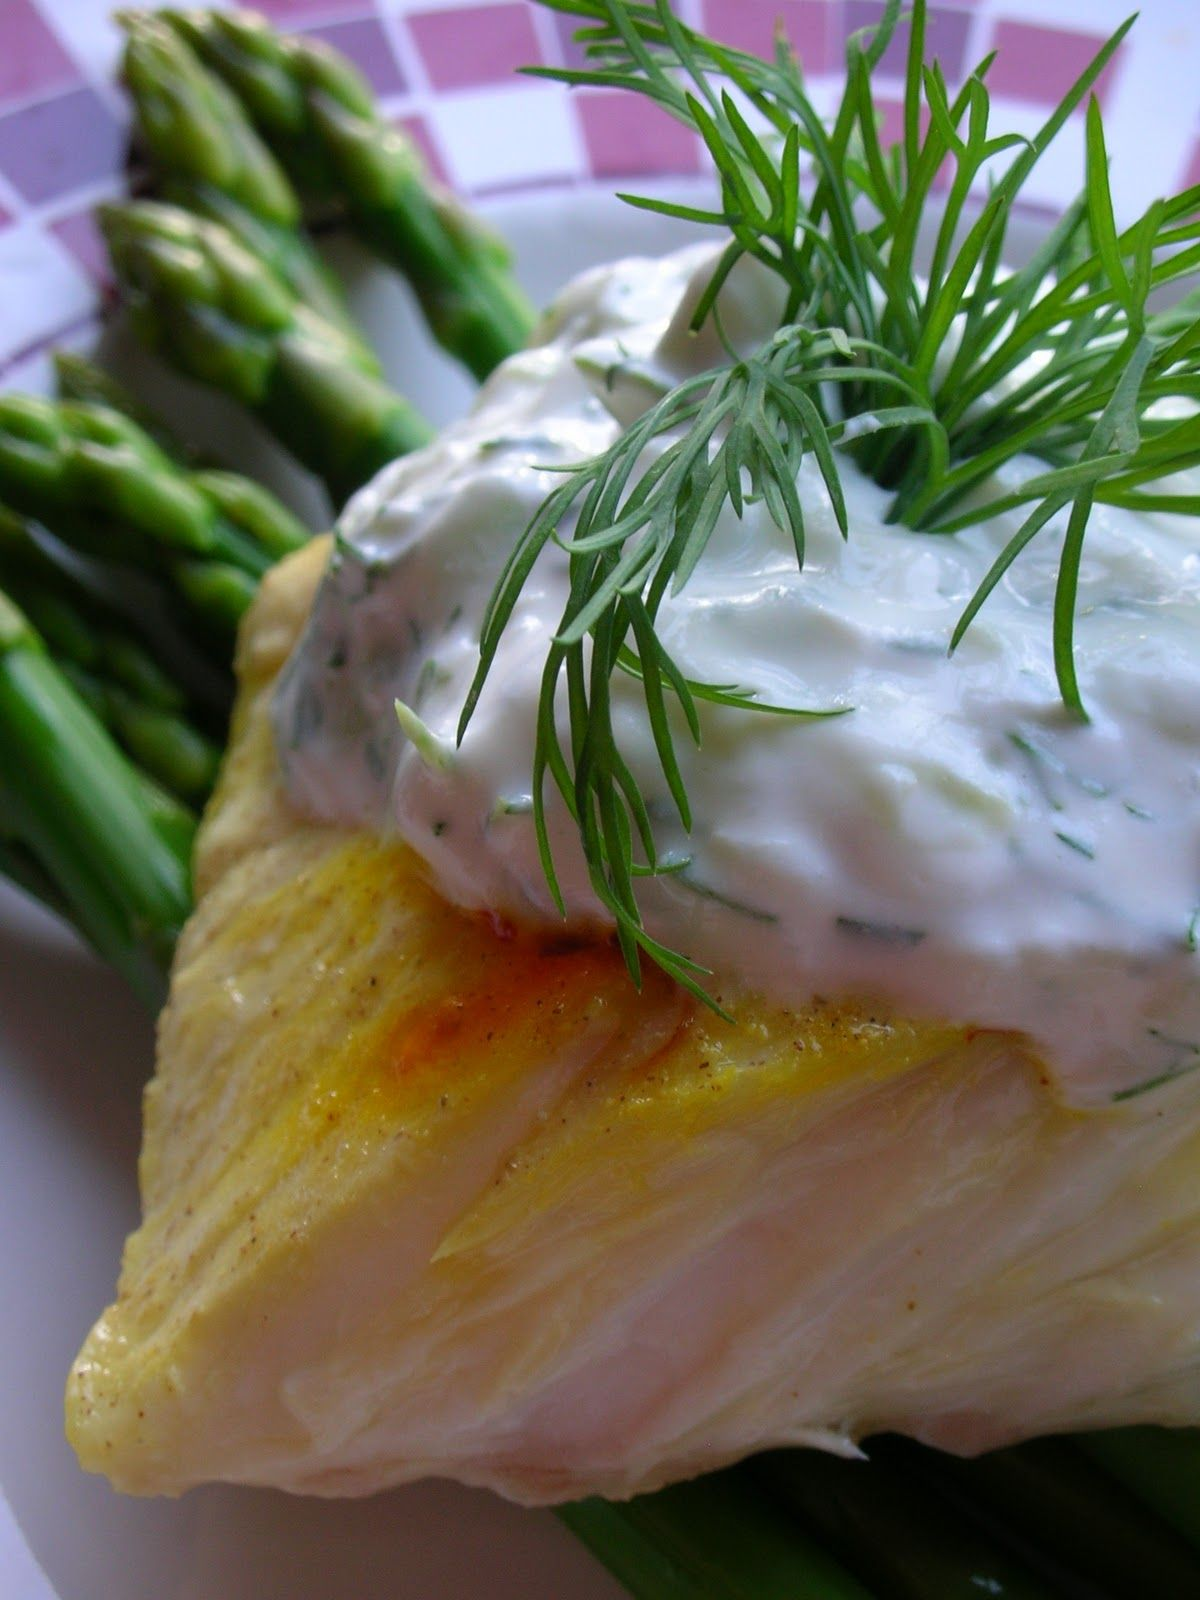 Poached Halibut With Saffron And Cucumber Dill Sauce Instead Of Sour Cream I Would Use Greek Yogurt Cucumber Dill Sauce Cucumber Dill Dill Sauce